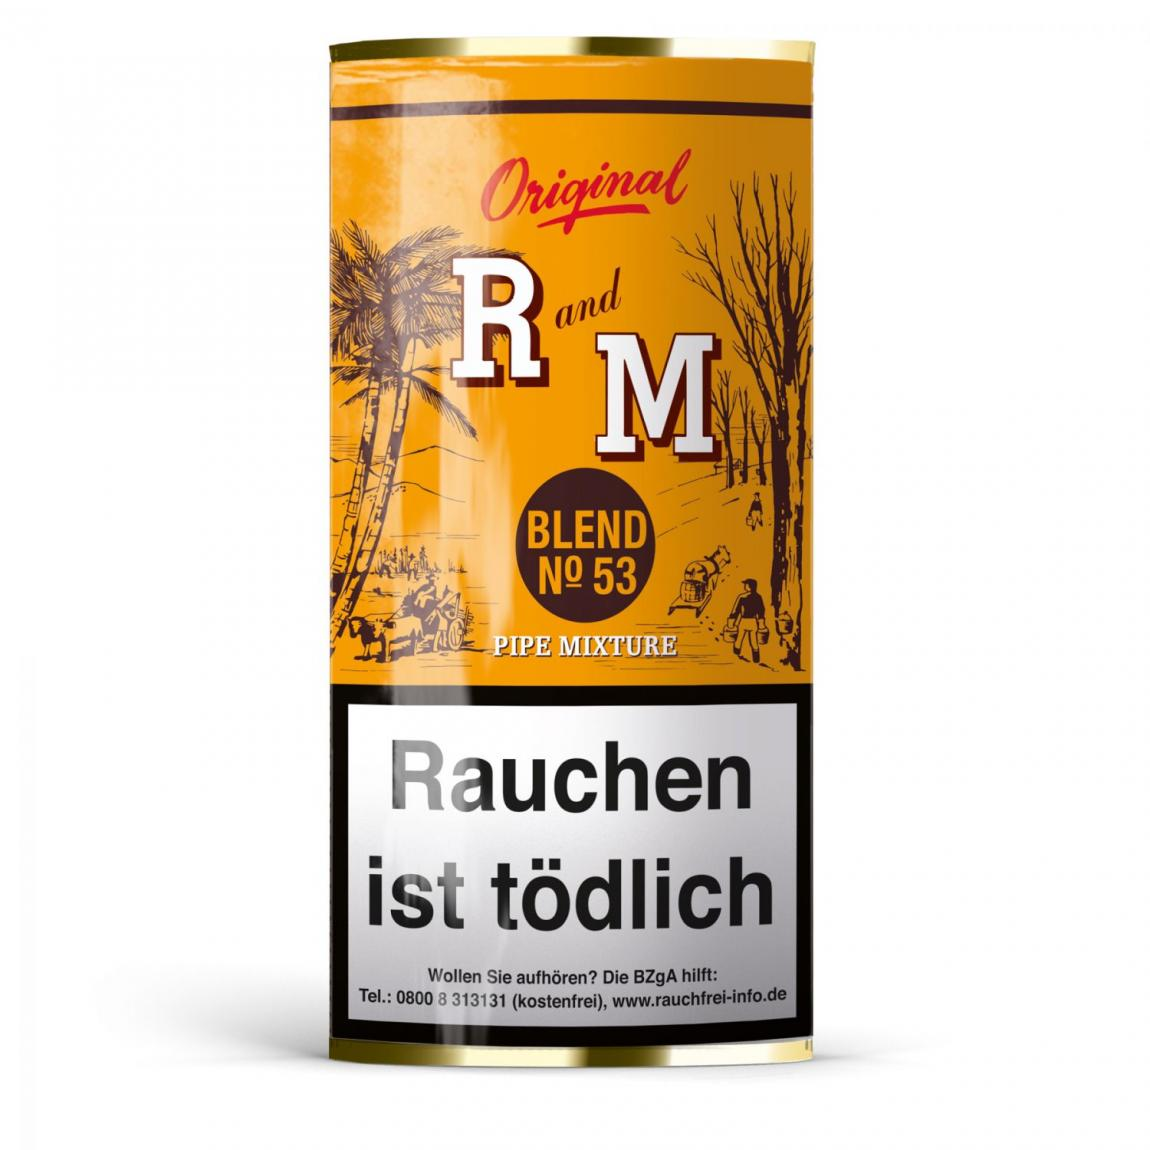 R and M Pipe Mixture Blend No 53, 50g Pouch